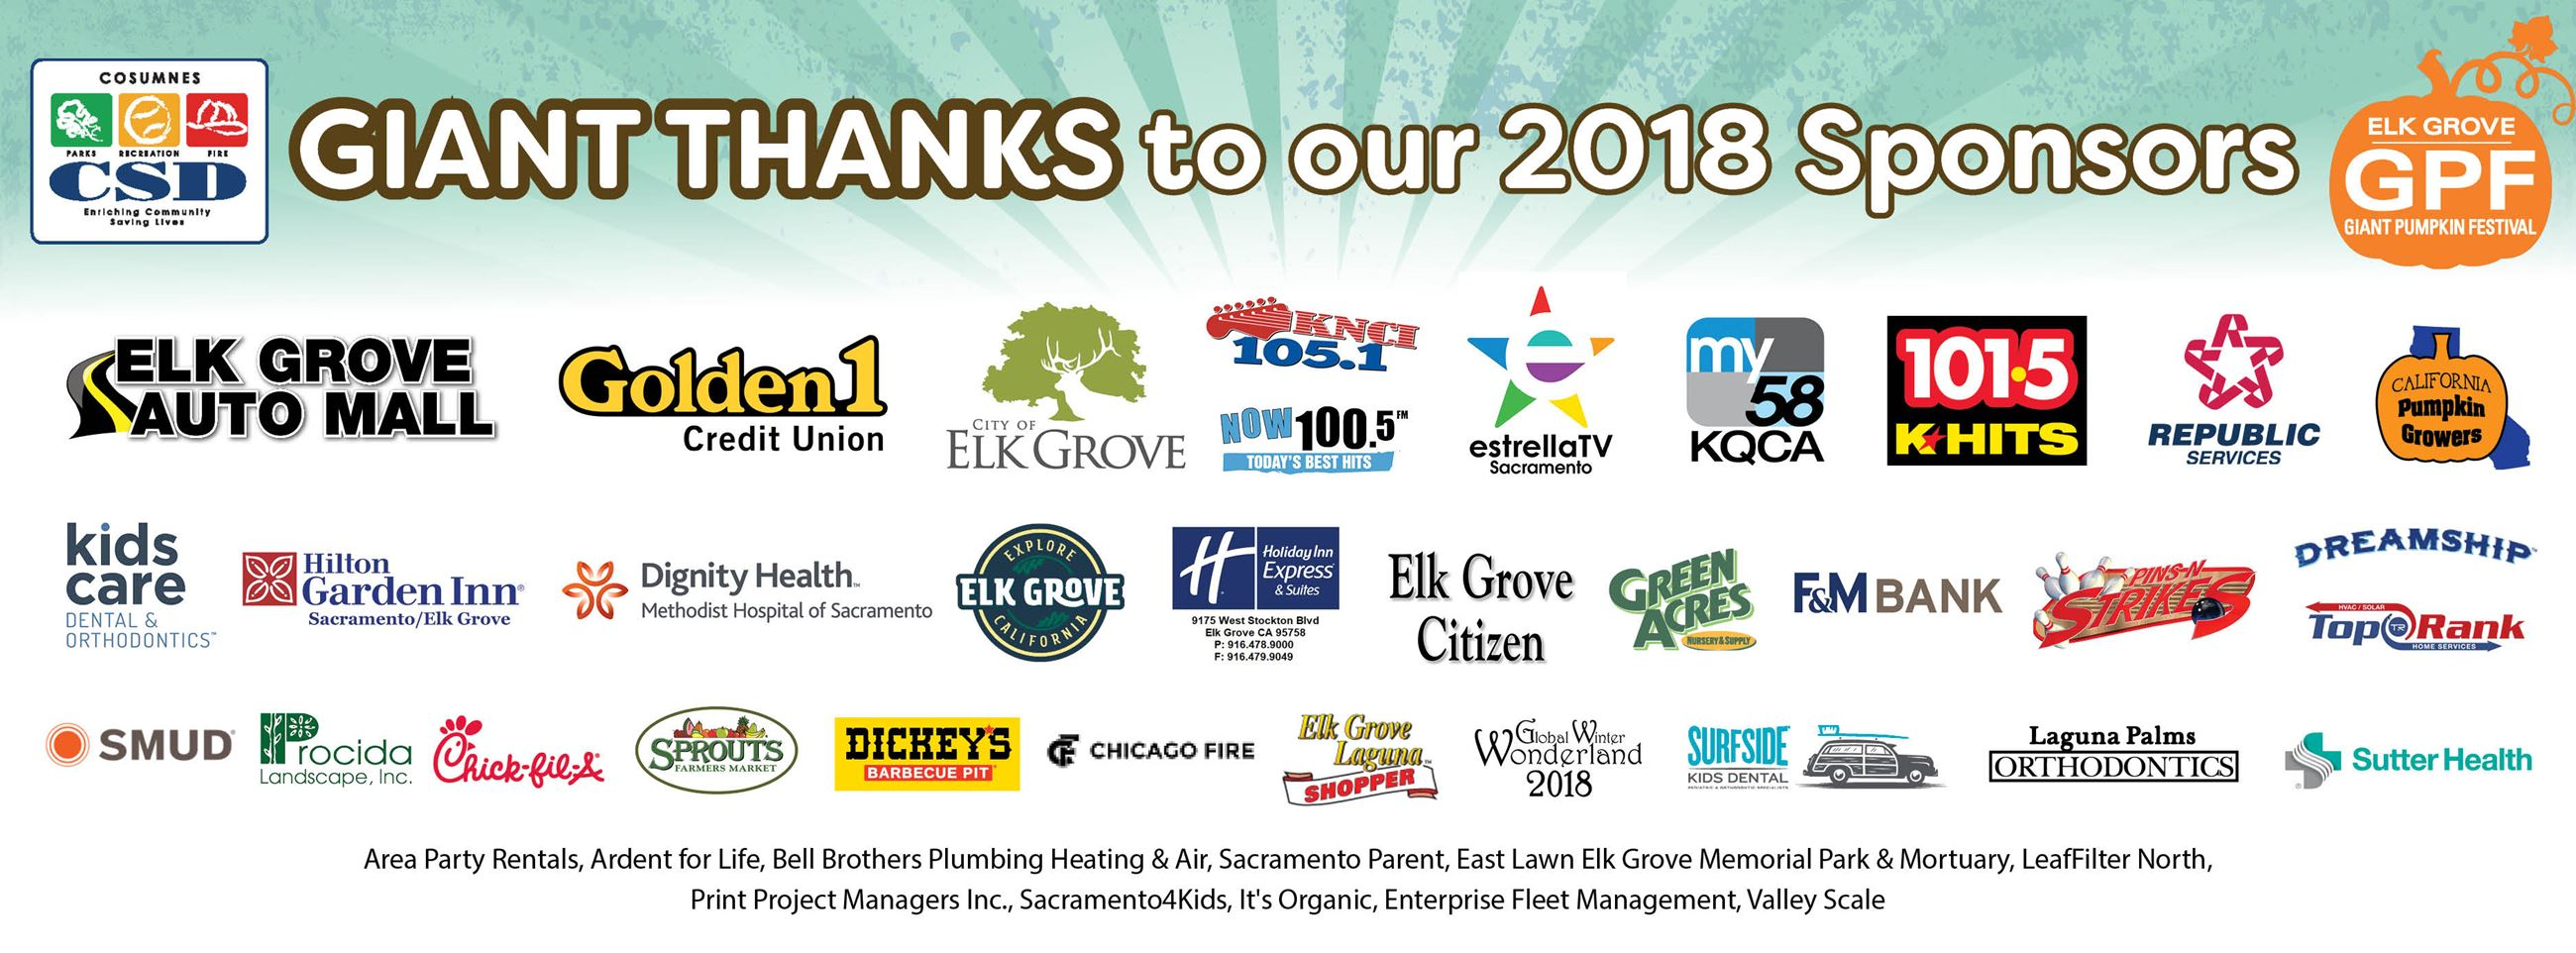 GIANT THANKS to our 2018 Sponsors